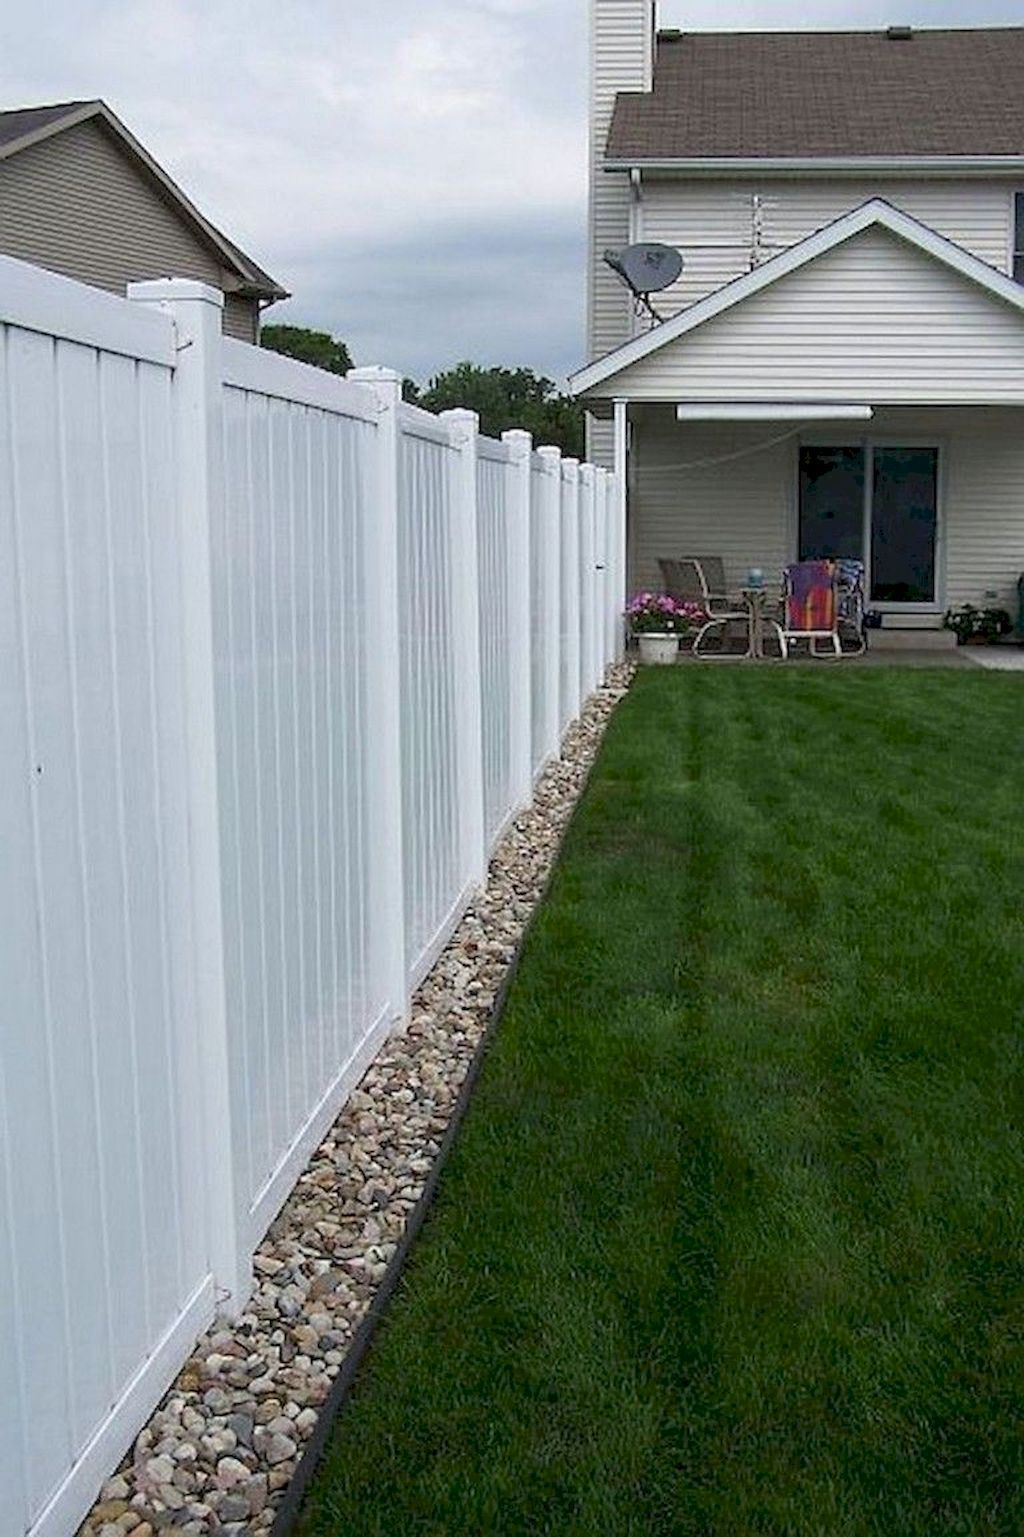 65 DIY Backyard Privacy Fence Design Ideas on a Budget, #backyard #budg ...#backyard #budg #budget #design #Backyard #budg #Budget #Design #DIY #Fence #Ideas #Privacy